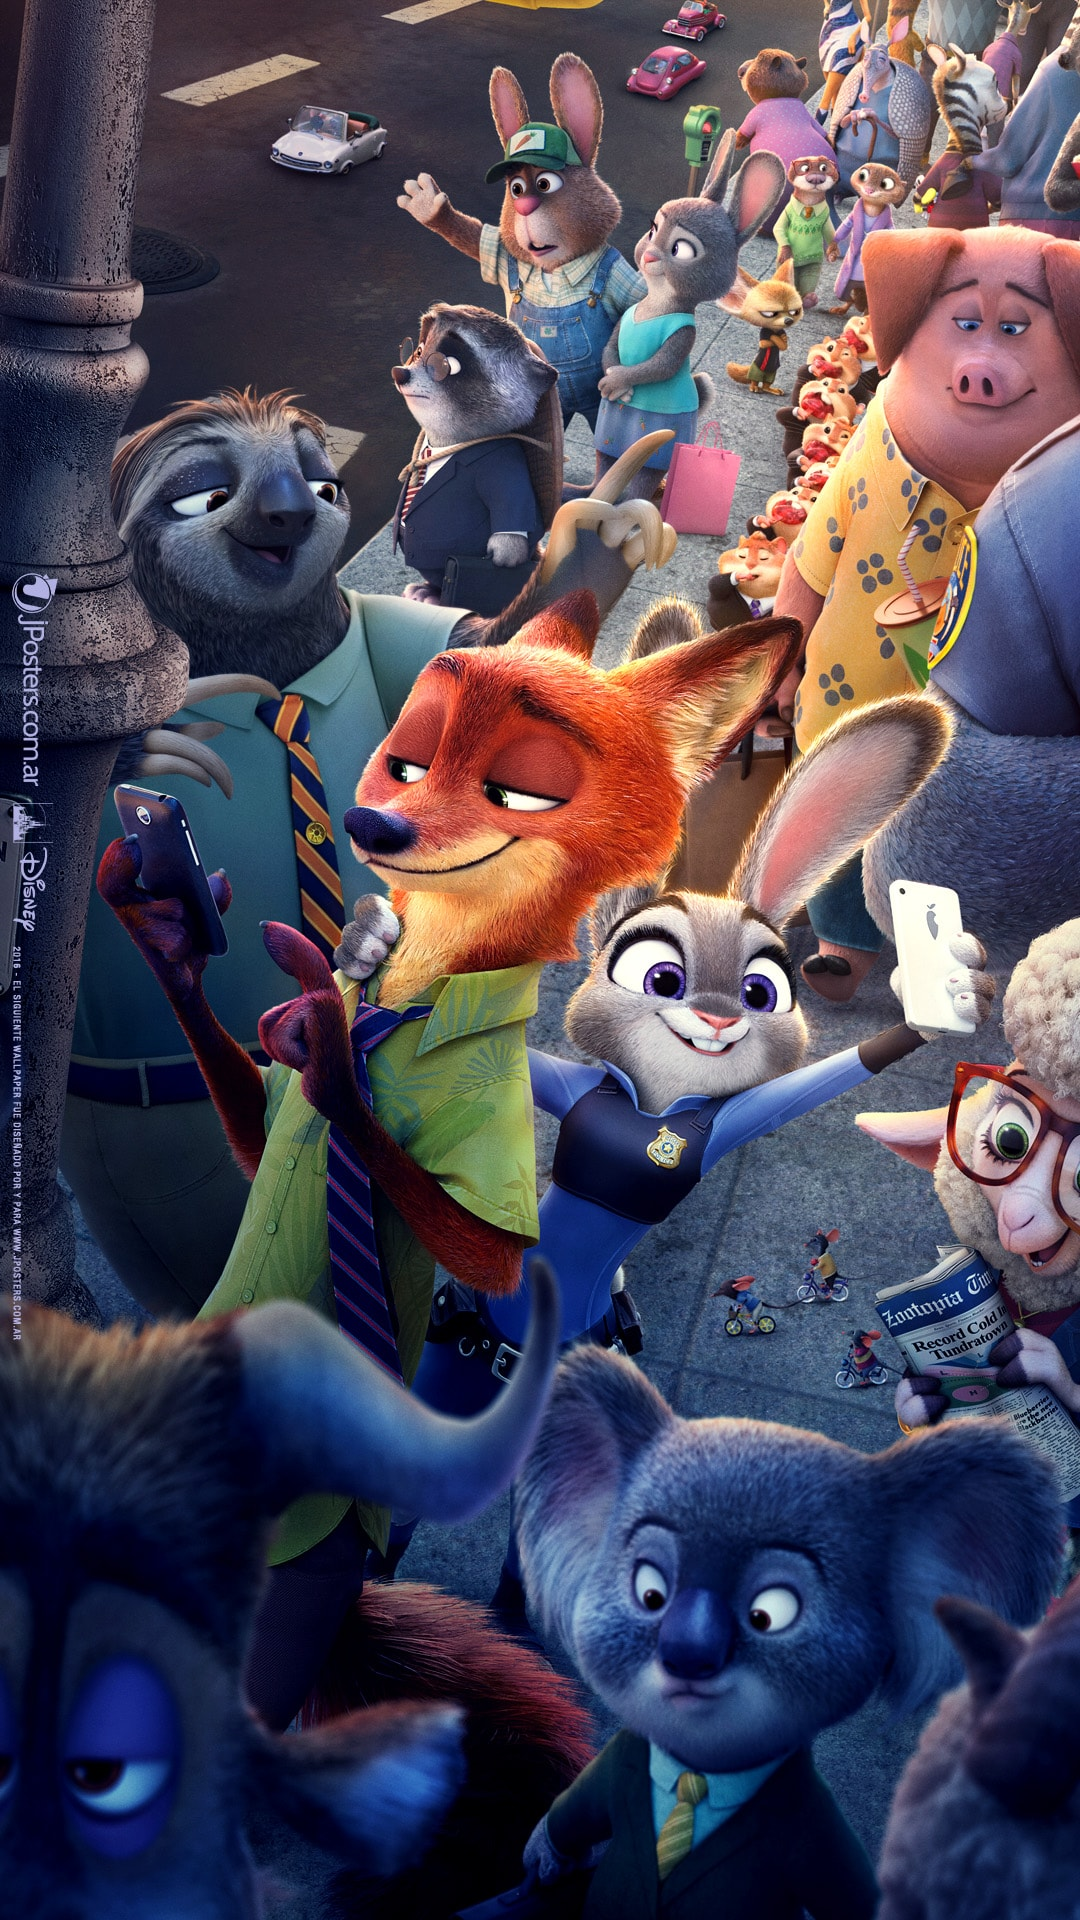 Zootopia for mobile